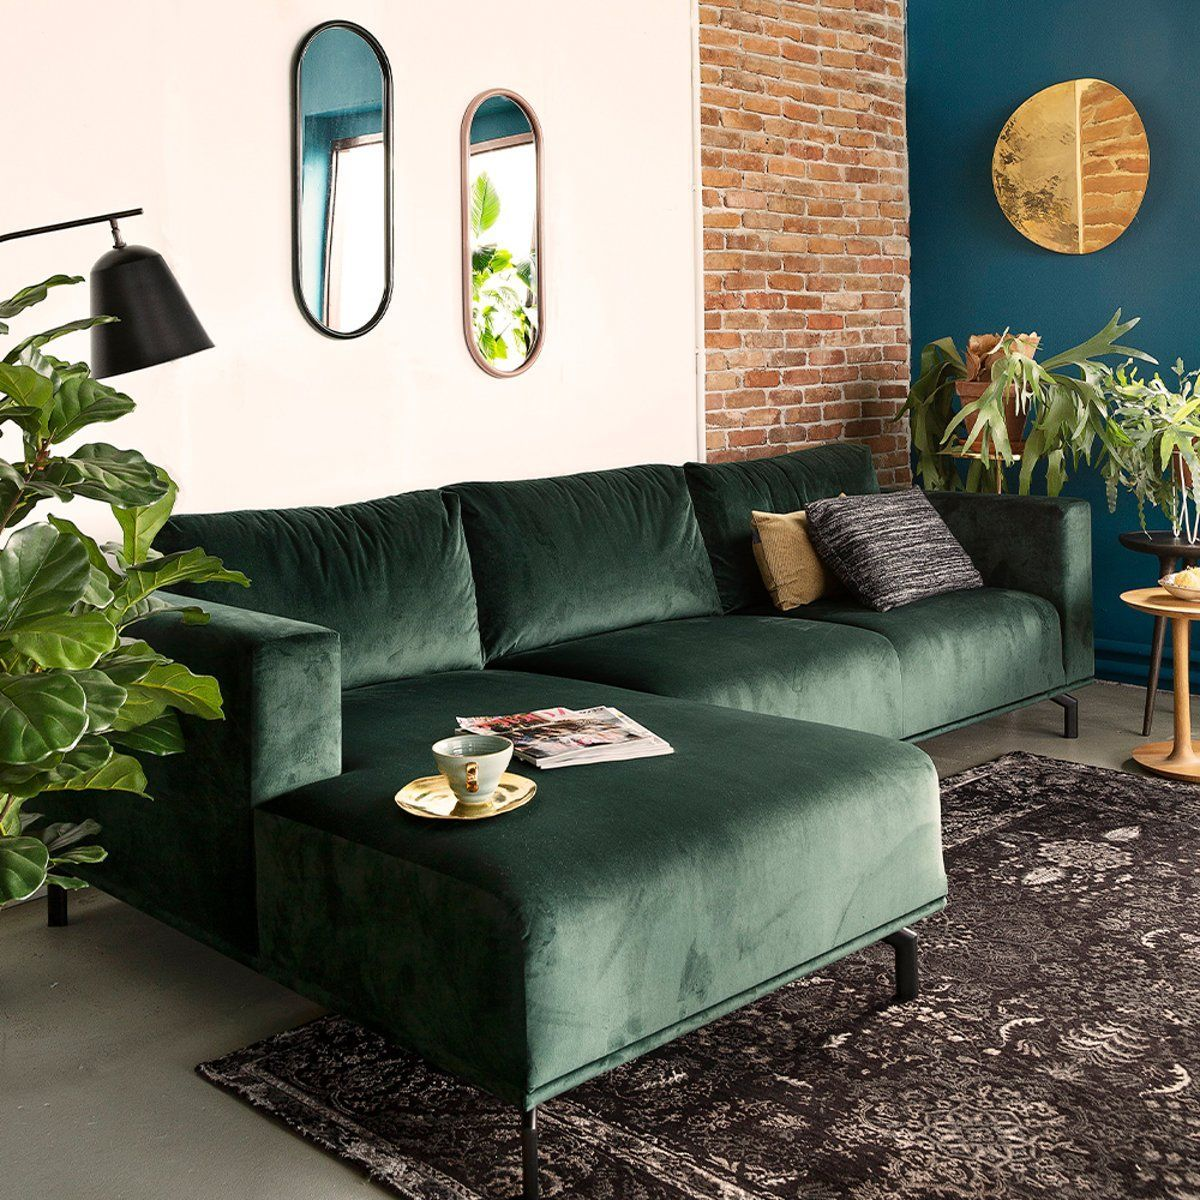 Bol Com 4x6 Sofa Compacte Hoekbank 275 Cm Donker Groen Velours Green Sofa Living Room Green Sofa Living Green Couch Living Room